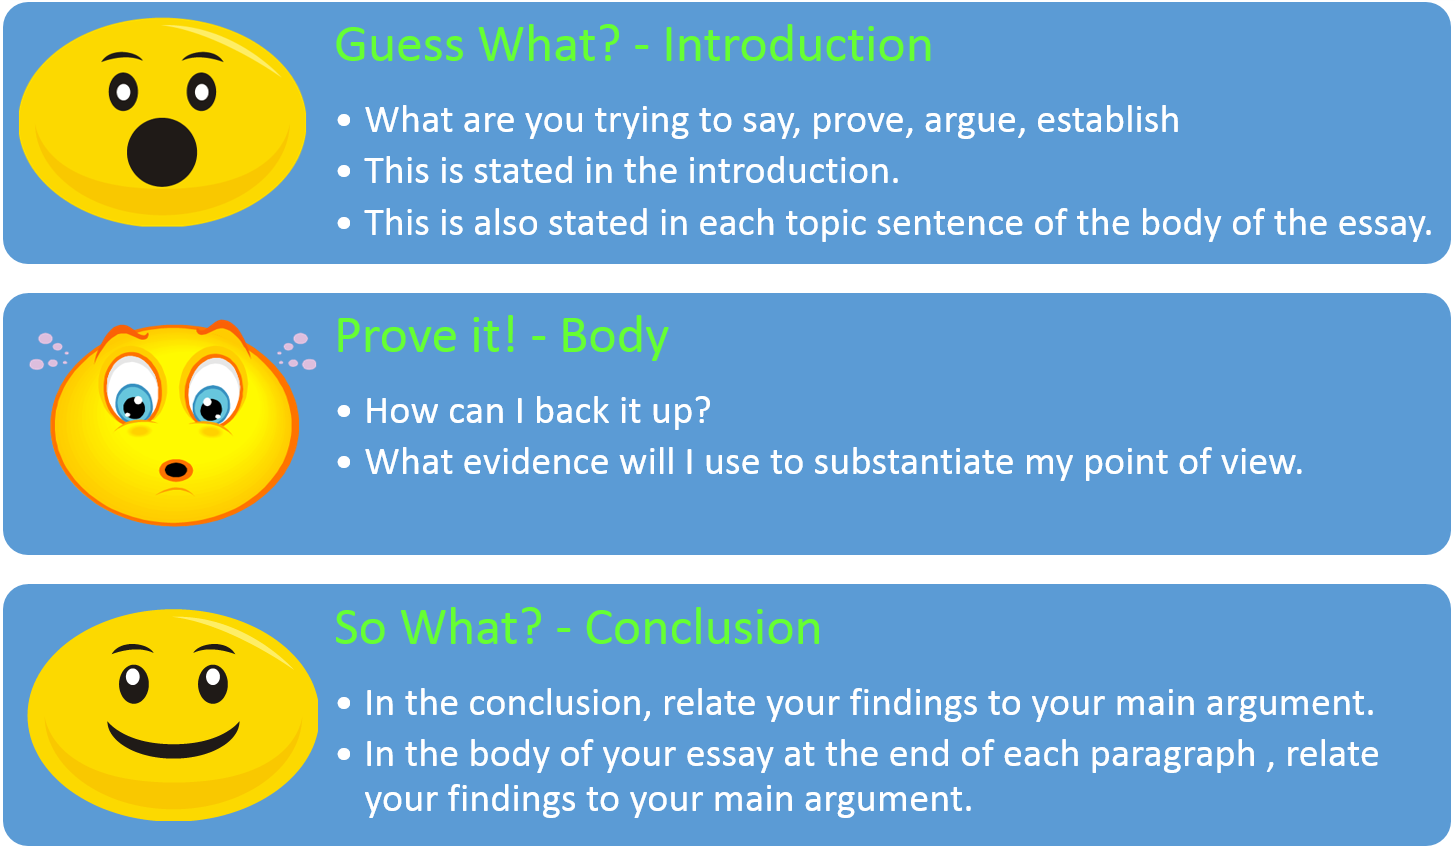 academic college essay university writing Top quality essay writing services  as there are many essay writing service websites out there that help them complete their tasks on  college, or a university.